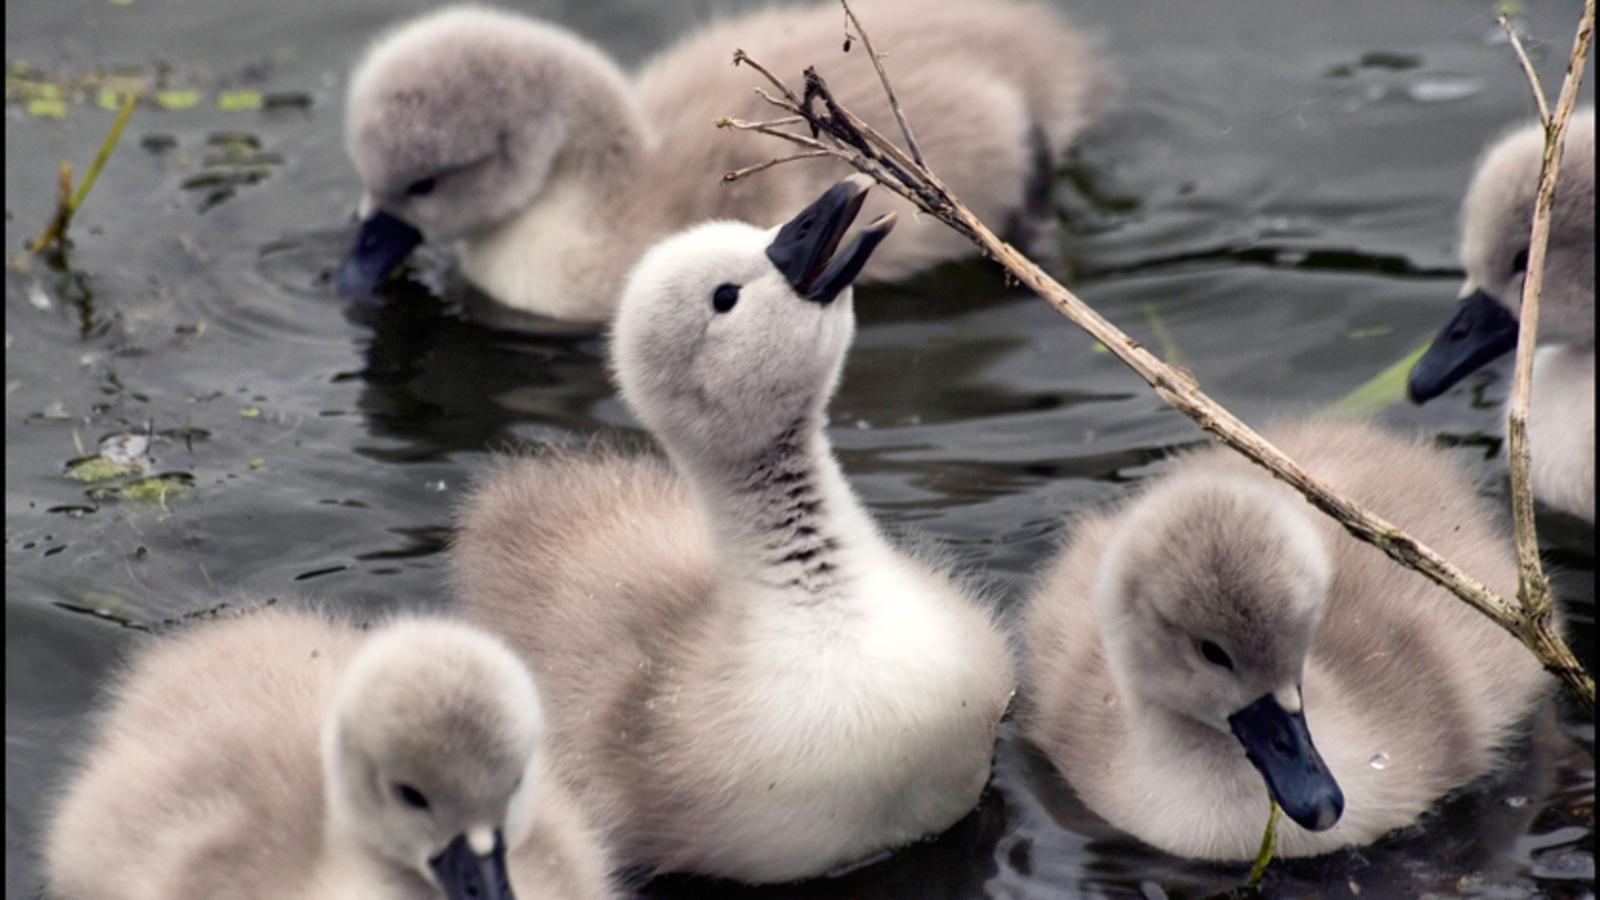 swan ducklings, they are so cute